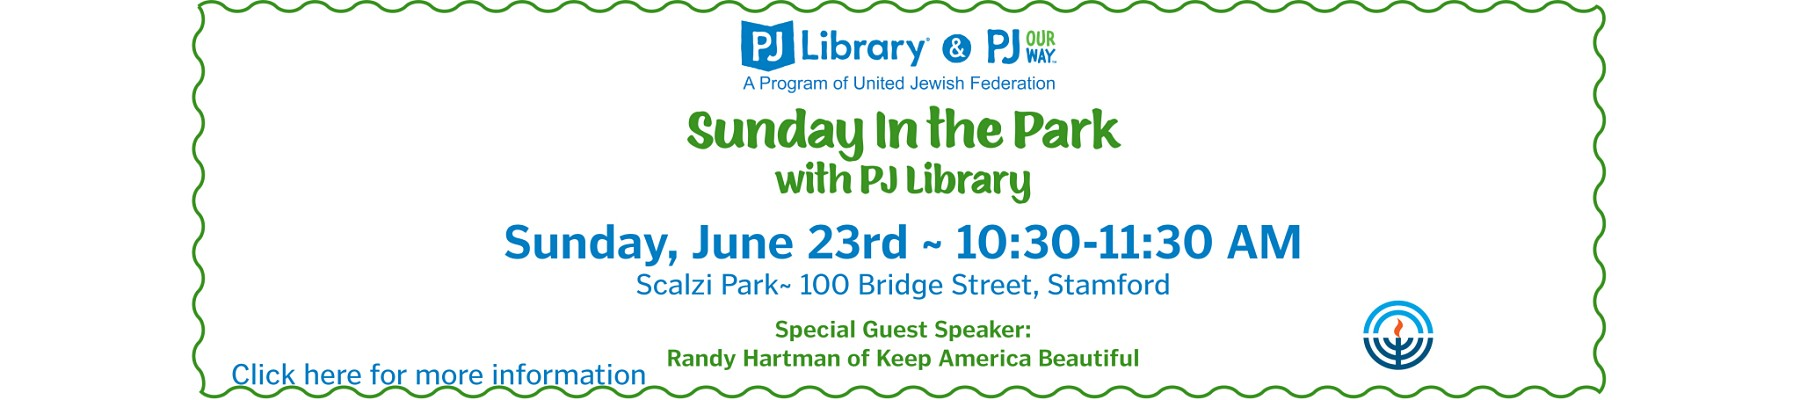 PJ in the park 2019 banner_opt (1).jpg